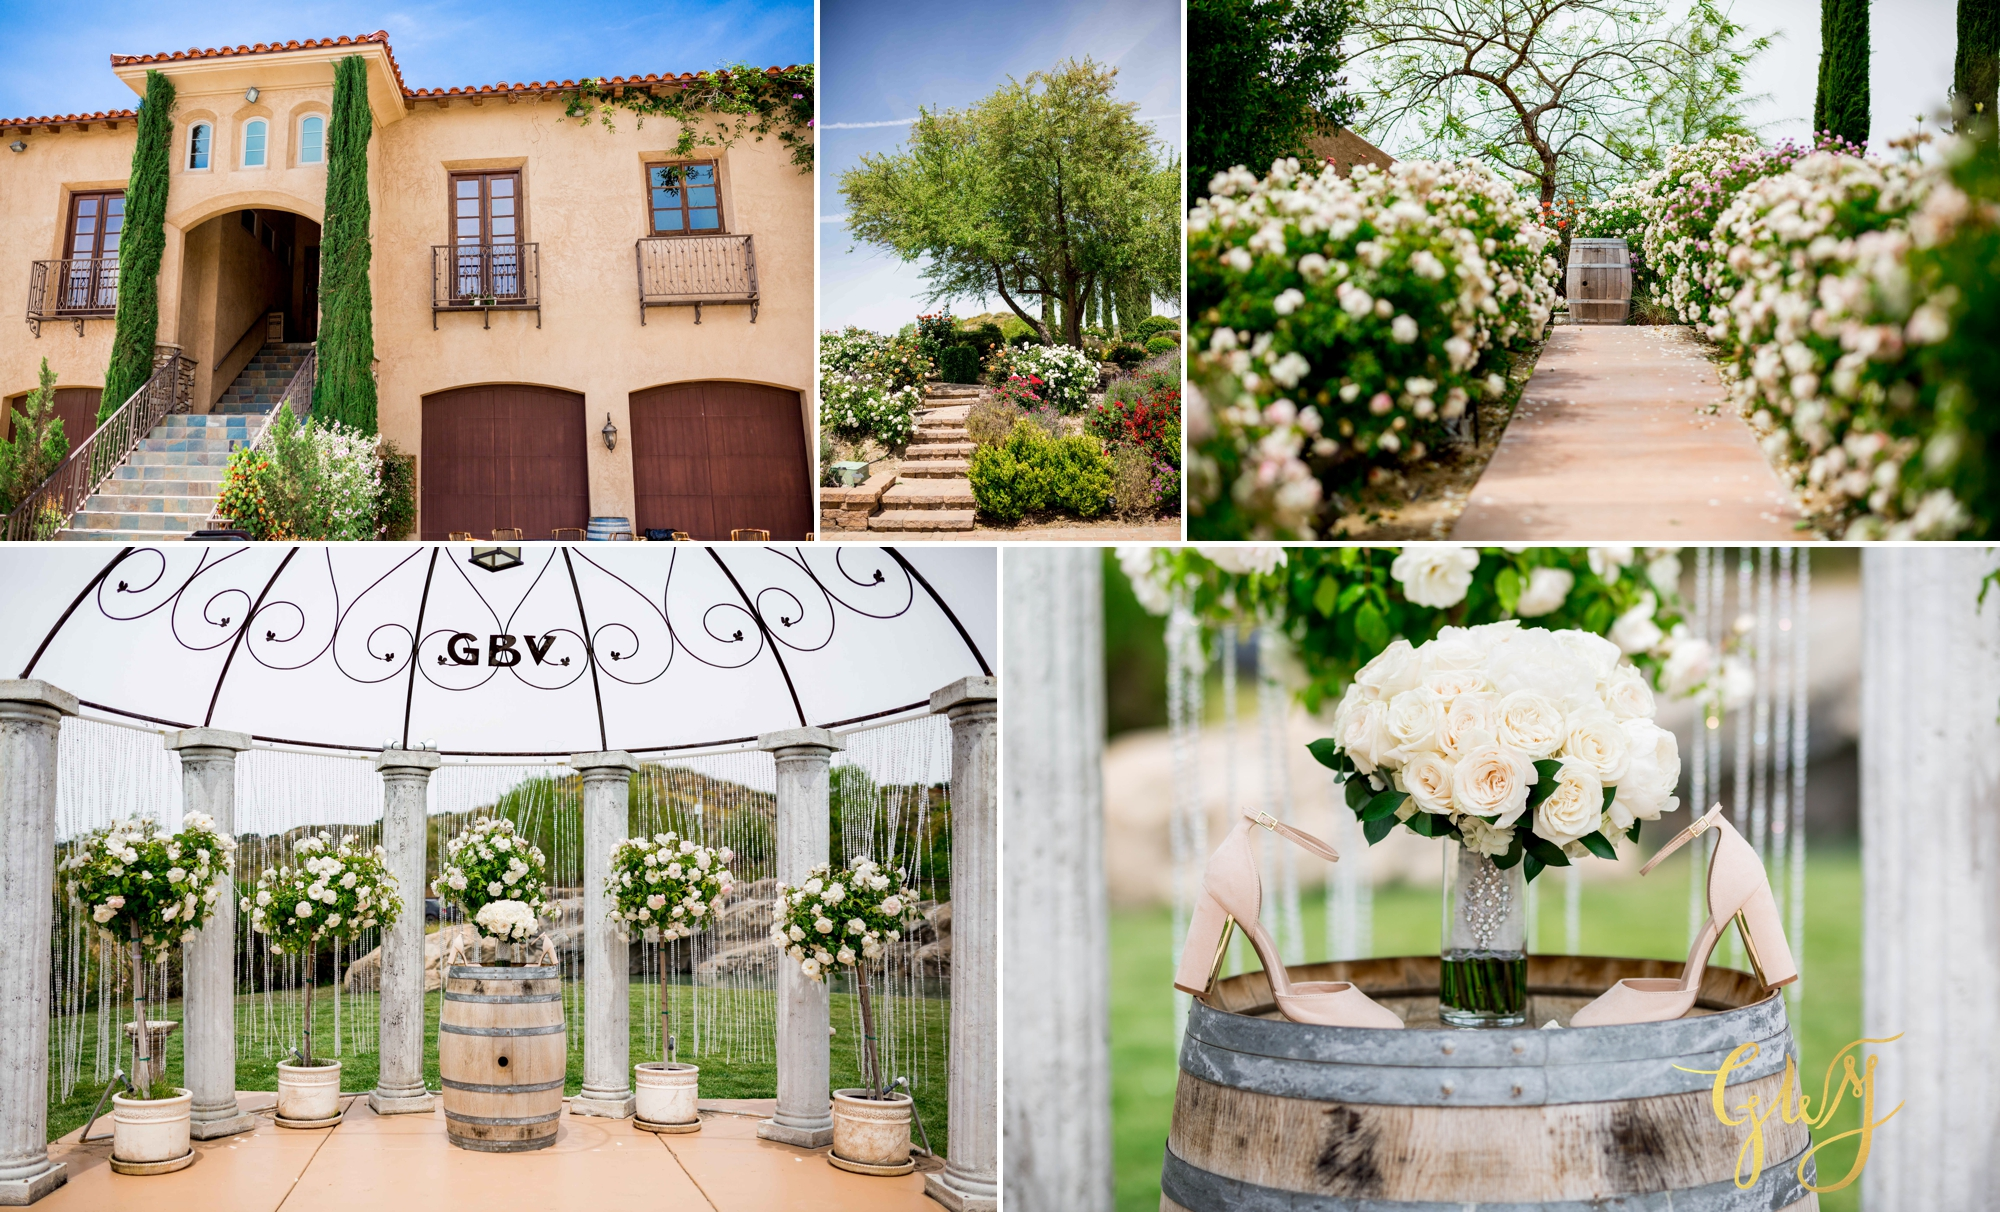 Kristen + Krsto's Romantic Temecula Winery Spring Wedding by Glass Woods Media 1.jpg